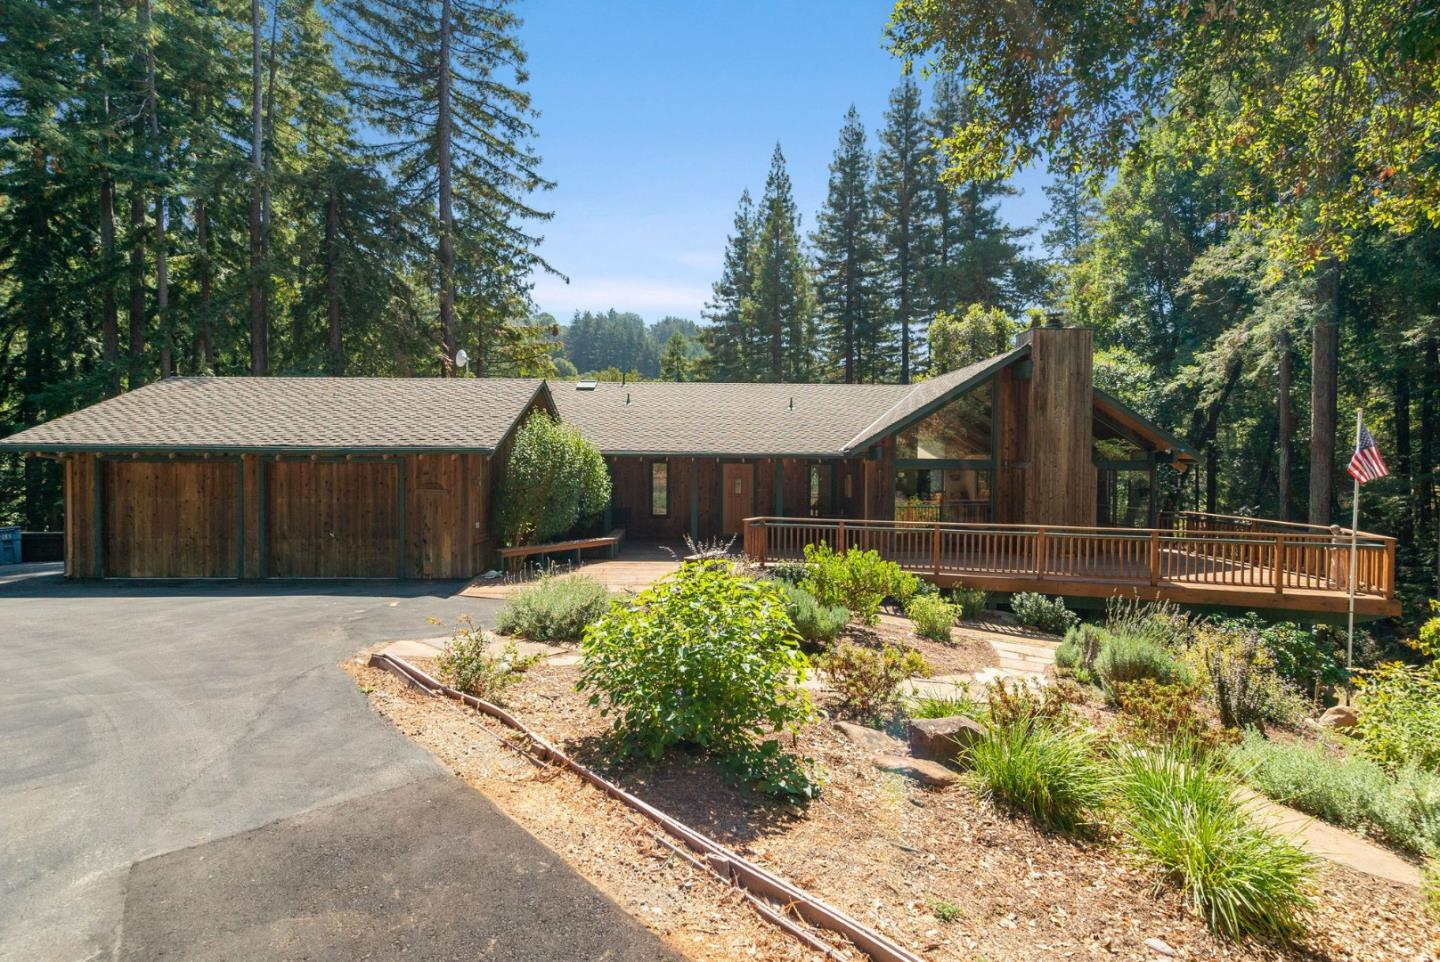 Just Dropped ~$50,000! Nestled in the redwoods above the City of Scotts Valley, this beautiful home is located just 3-miles from Glenwood Drive and 5-miles from Scotts Valley High. Host family and friends in the large living room with vaulted, open beam ceilings. The floor to ceiling windows provide phenomenal views of the garden and surrounding redwoods. The property lives like a single level home with the master bedroom, living room, kitchen and dining room on the entry level. The kitchen is equipped with granite counters and a walk-in pantry with access to the back deck. Sit and enjoy the spectacular sunrises/sunsets and majestic beauty of the surrounding forest from the front and back decks. This home has ample storage with a workshop, storage shed, 2-car garage and a storage space under the home. The lot is highlighted by space for gardening, two dog runs, well pump house, swing set and whole house generator. Come see this beautiful property today!